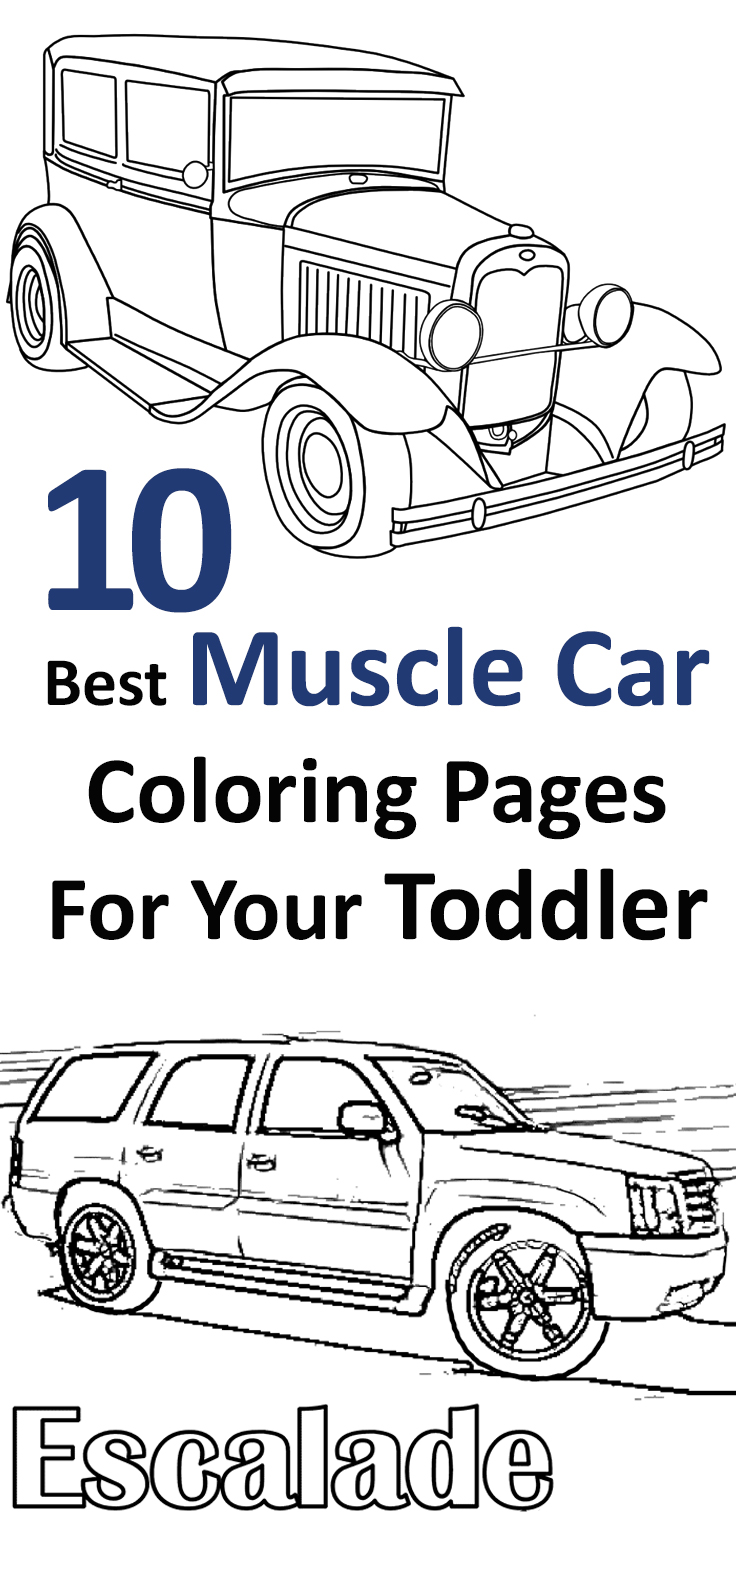 Disney cars coloring pages online - Disney Cars Coloring Pages Online 47